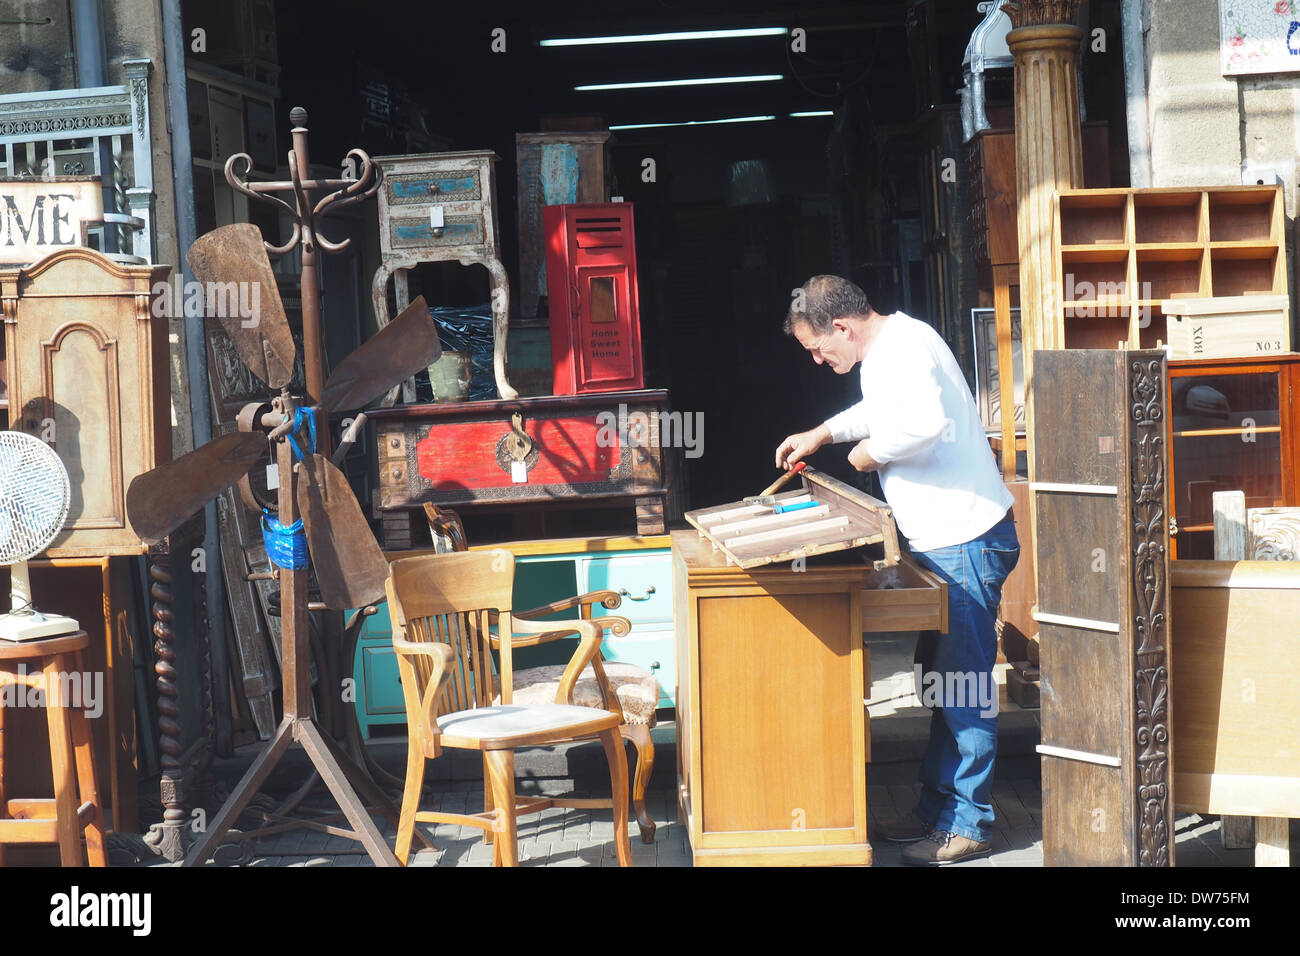 Vendor working on old drawers in front of an old furniture store in Jaffa, Yafo - Stock Image